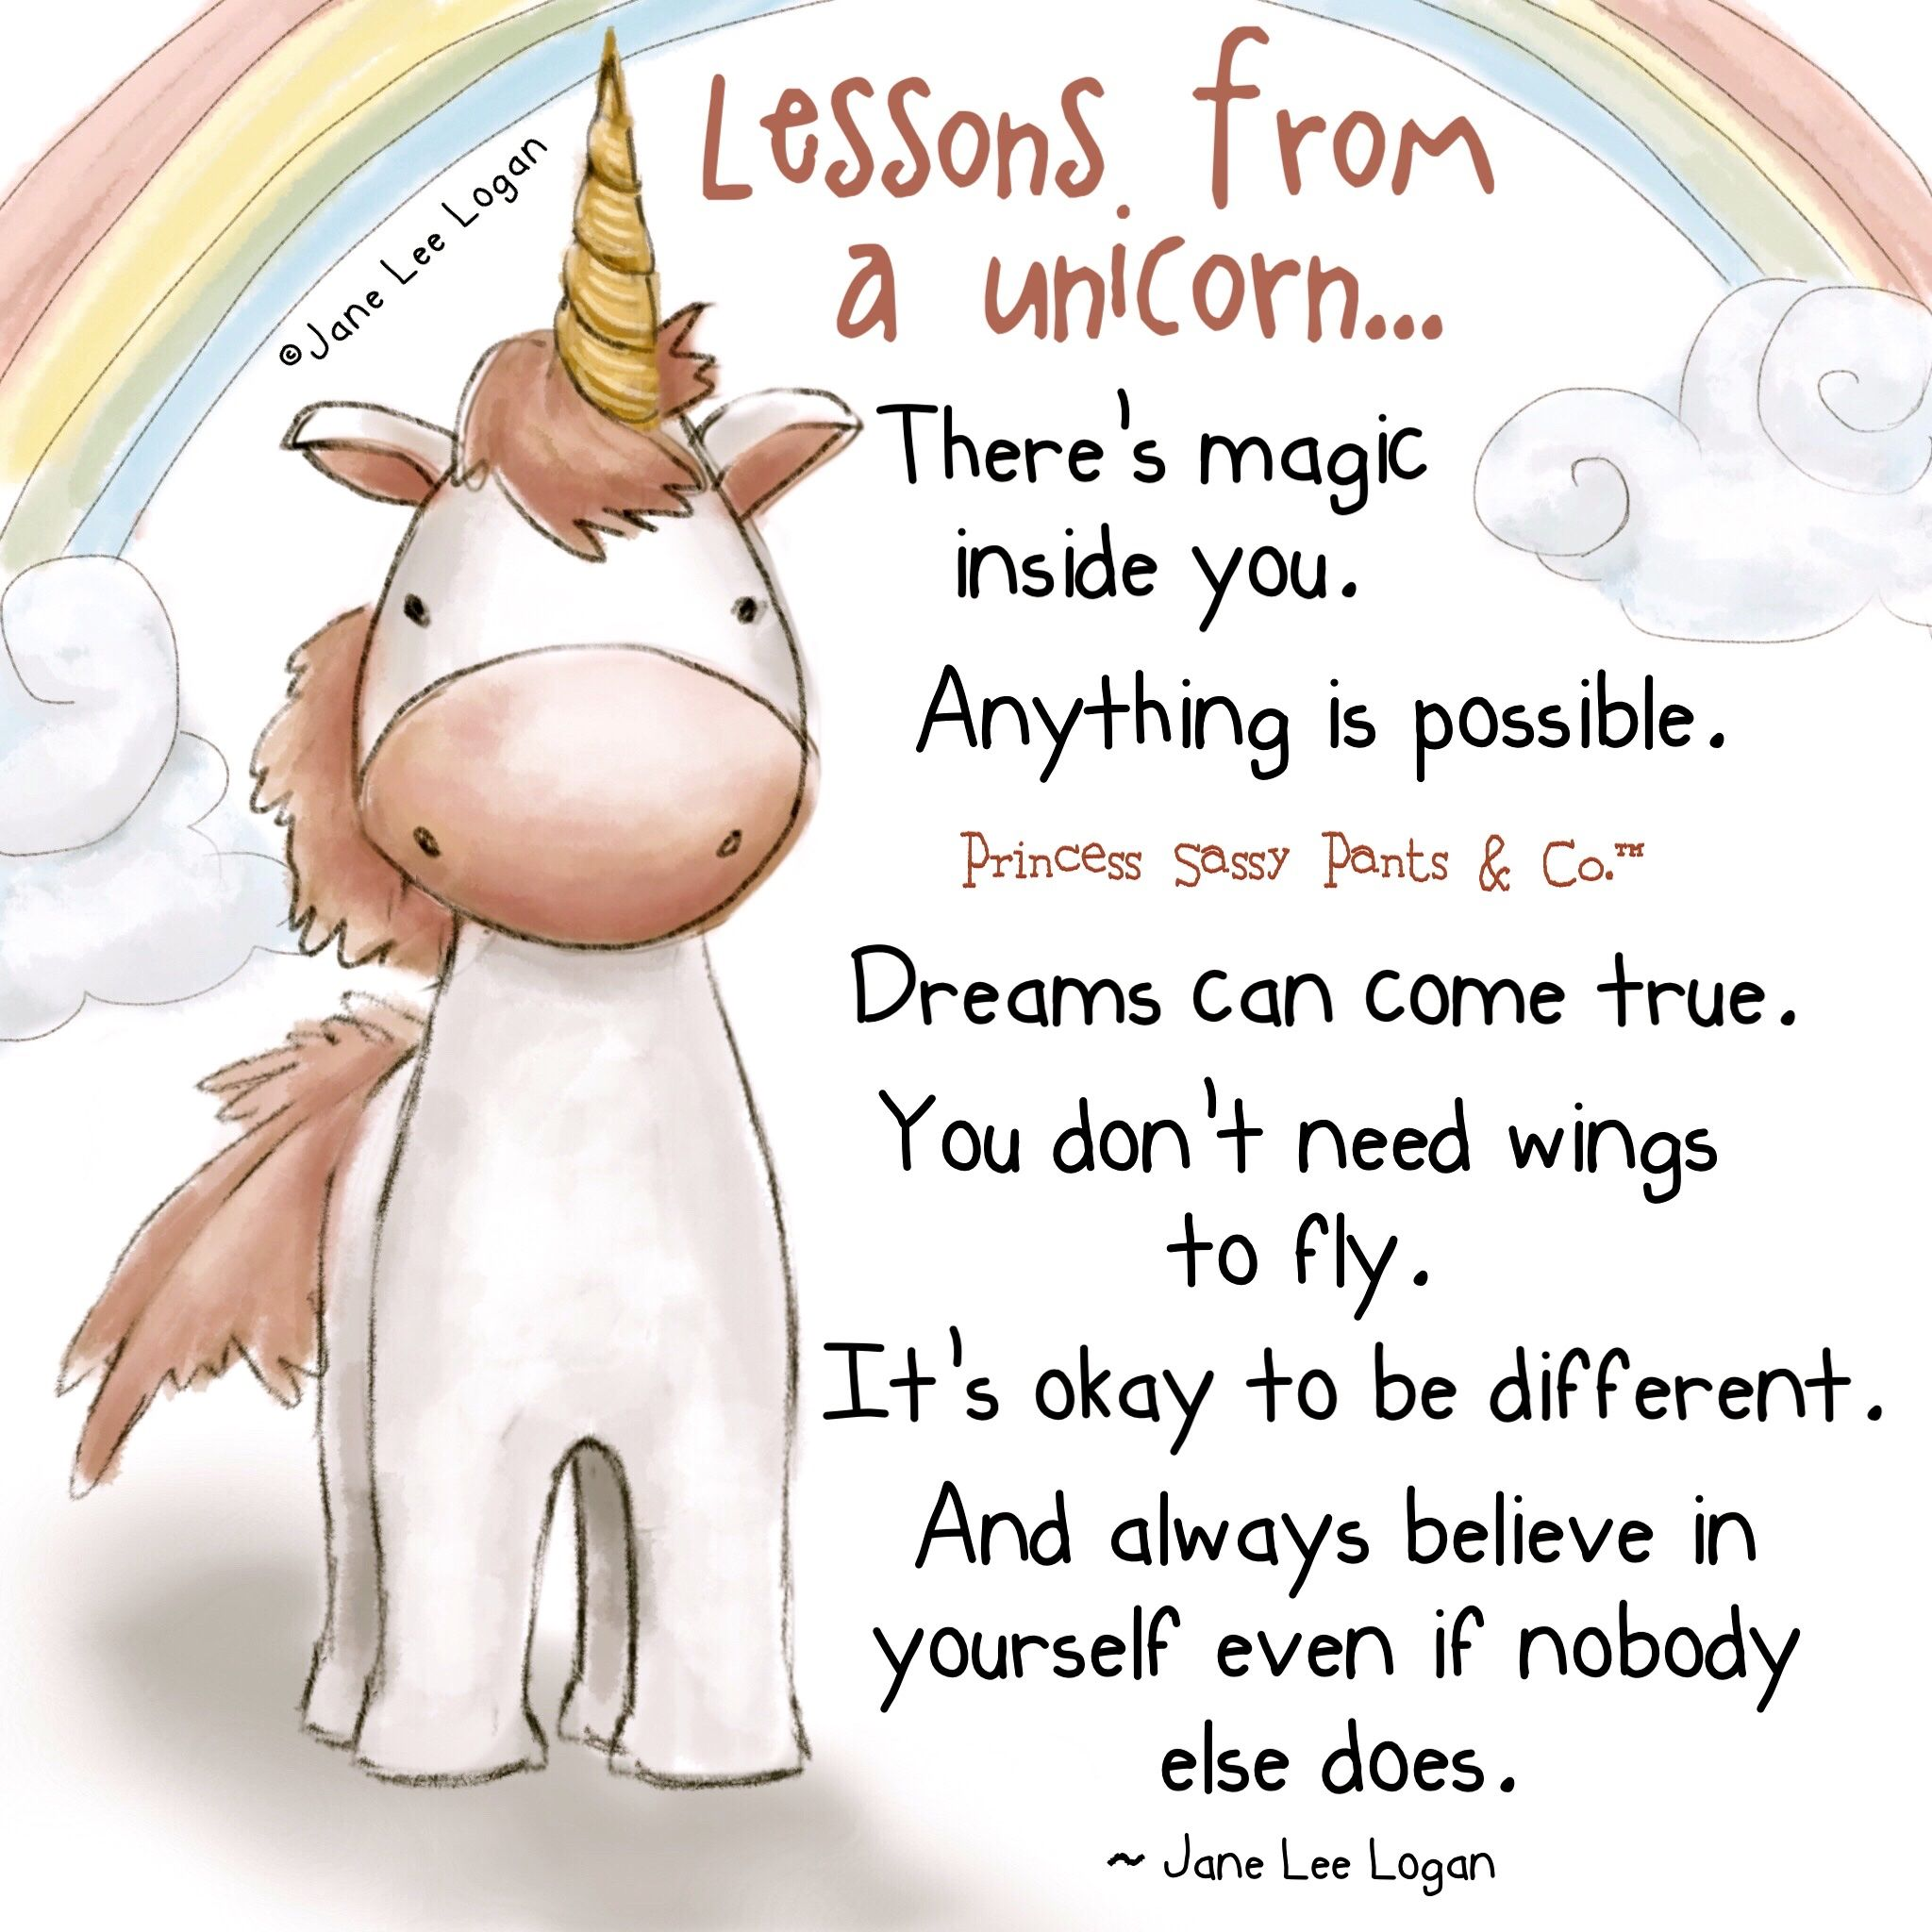 Lessons from a unicorn princess sassy pants co sassy pants lessons from a unicorn princess sassy pants co bloglovin bookmarktalkfo Gallery